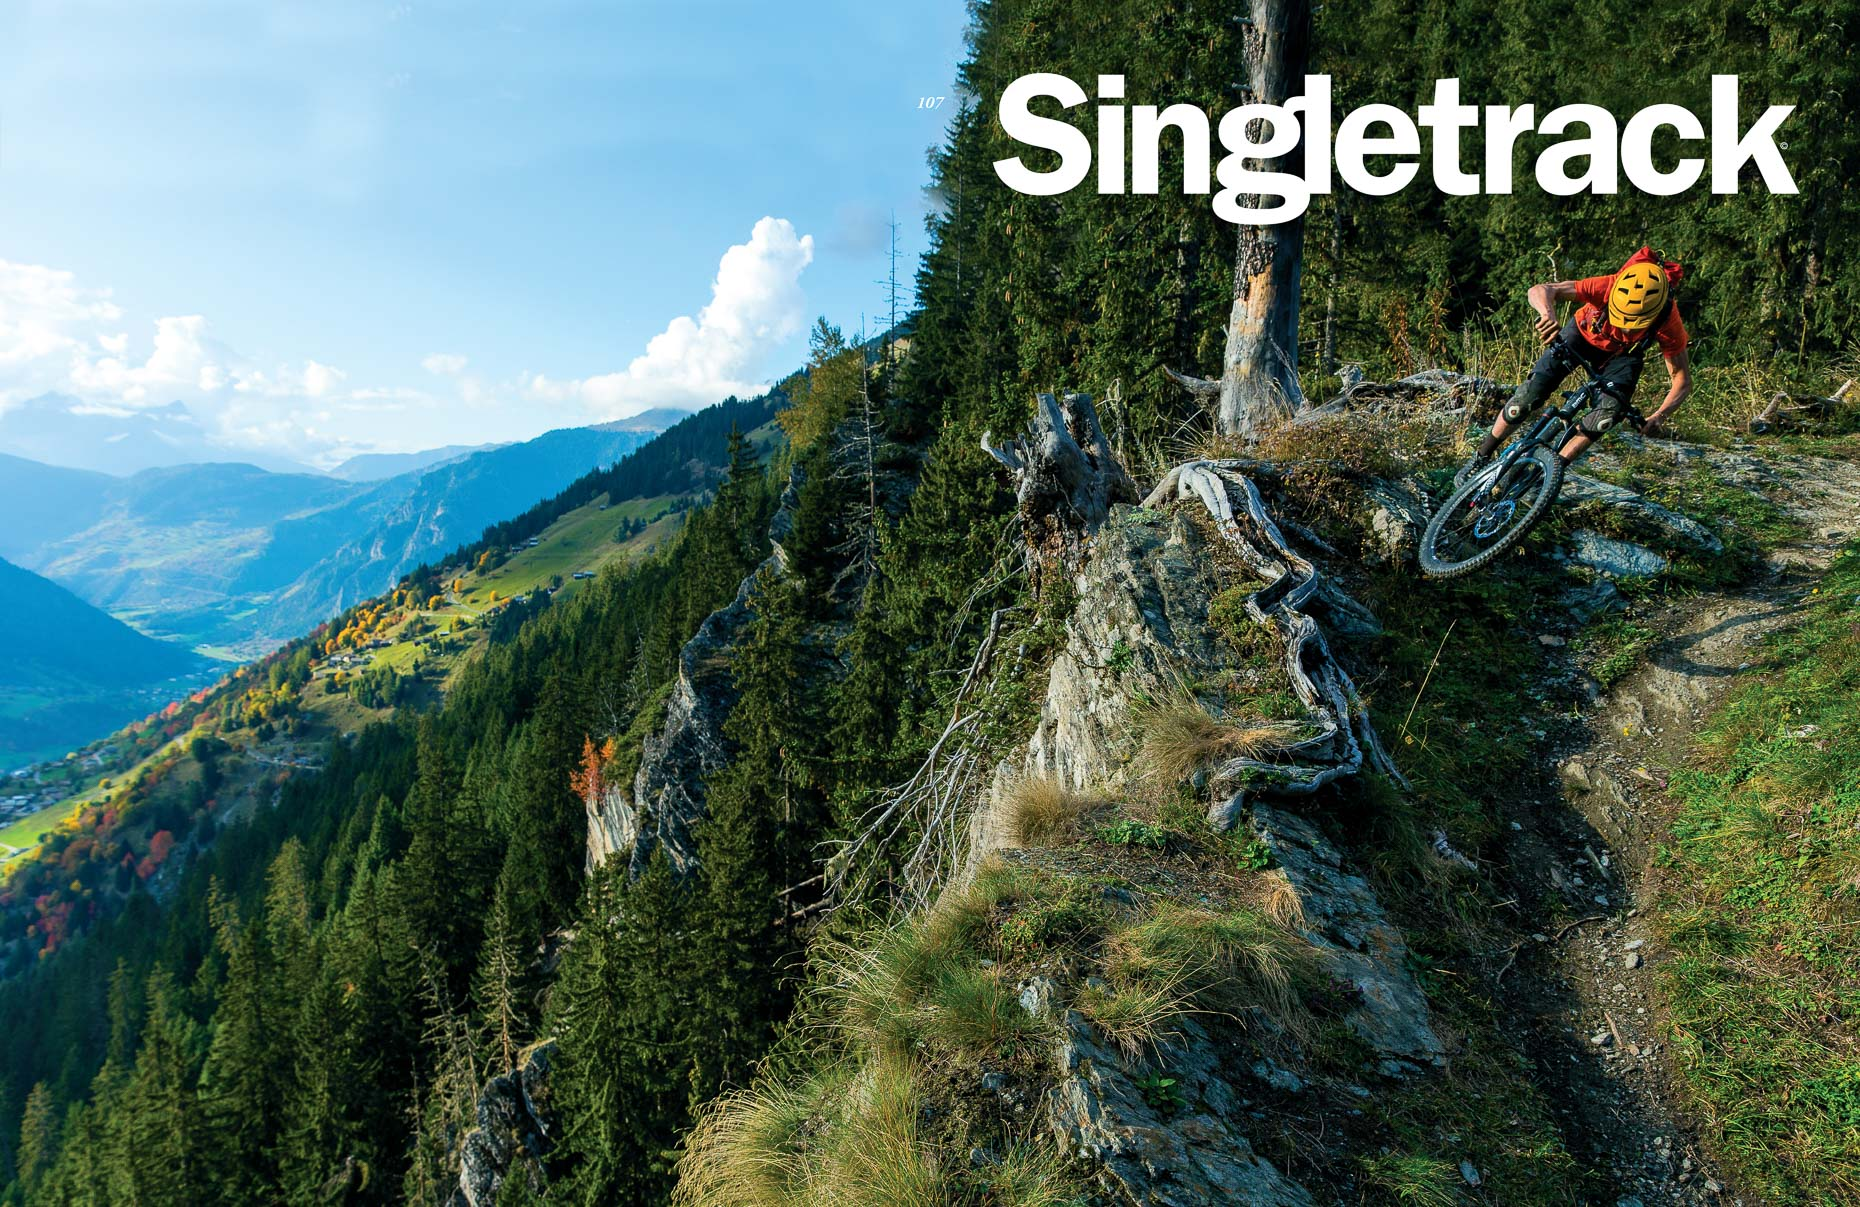 Singletrack_Issue107_Cover